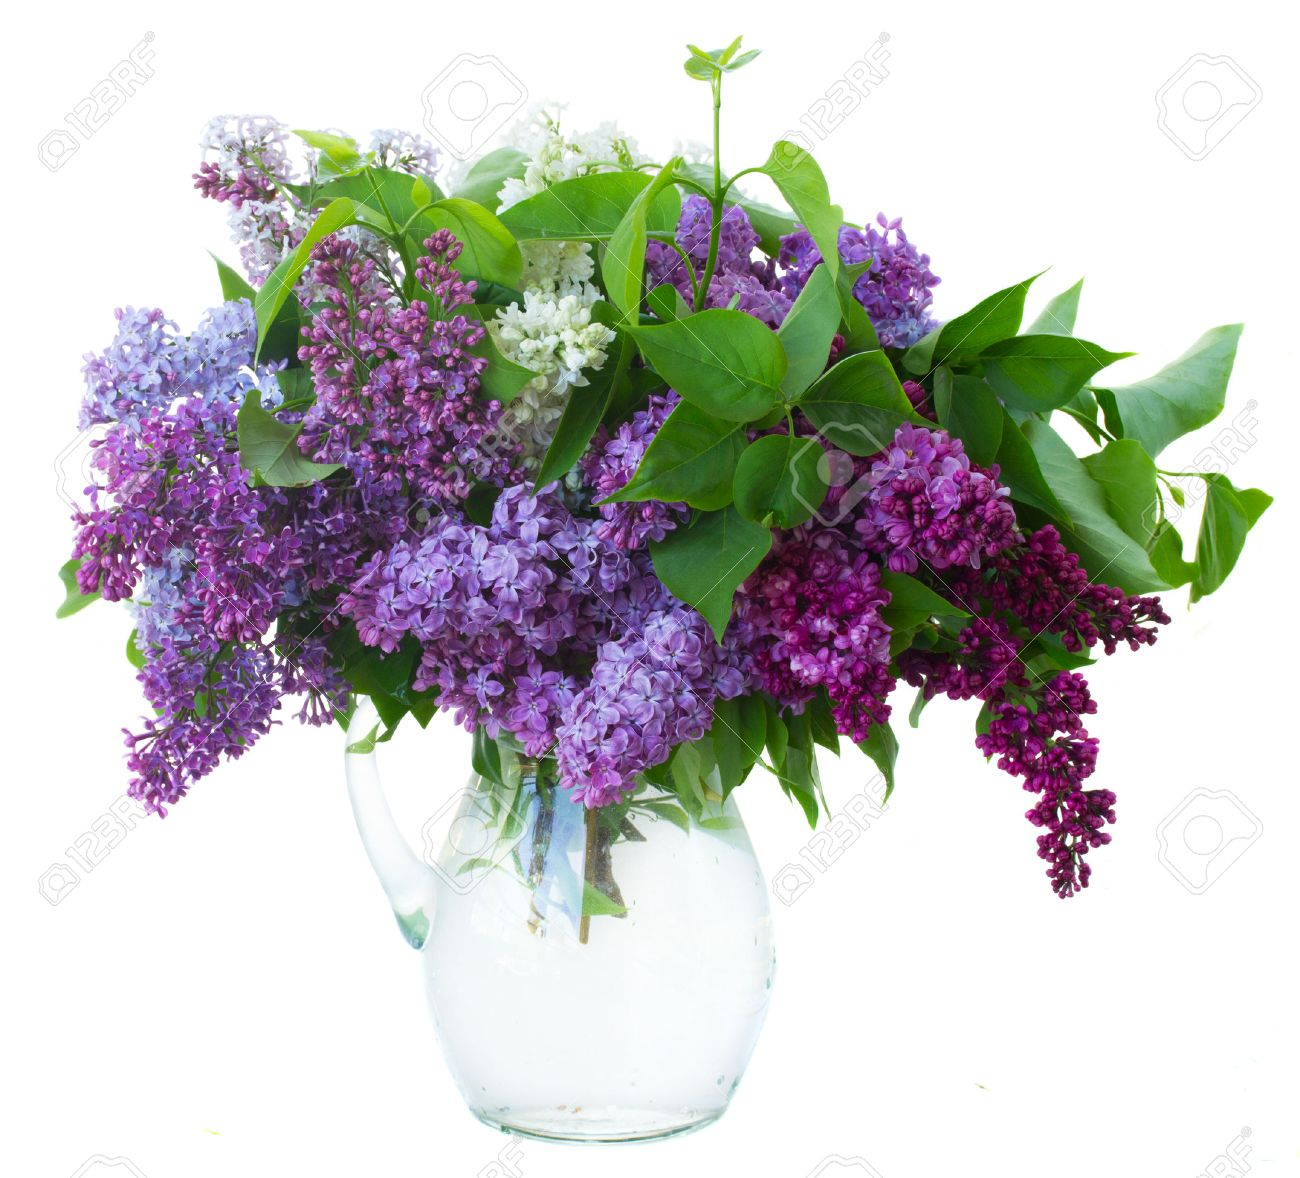 Vase stock photos royalty free vase images and pictures bunch of fresh lilac flowers in glass vase close up isolated on white background reviewsmspy